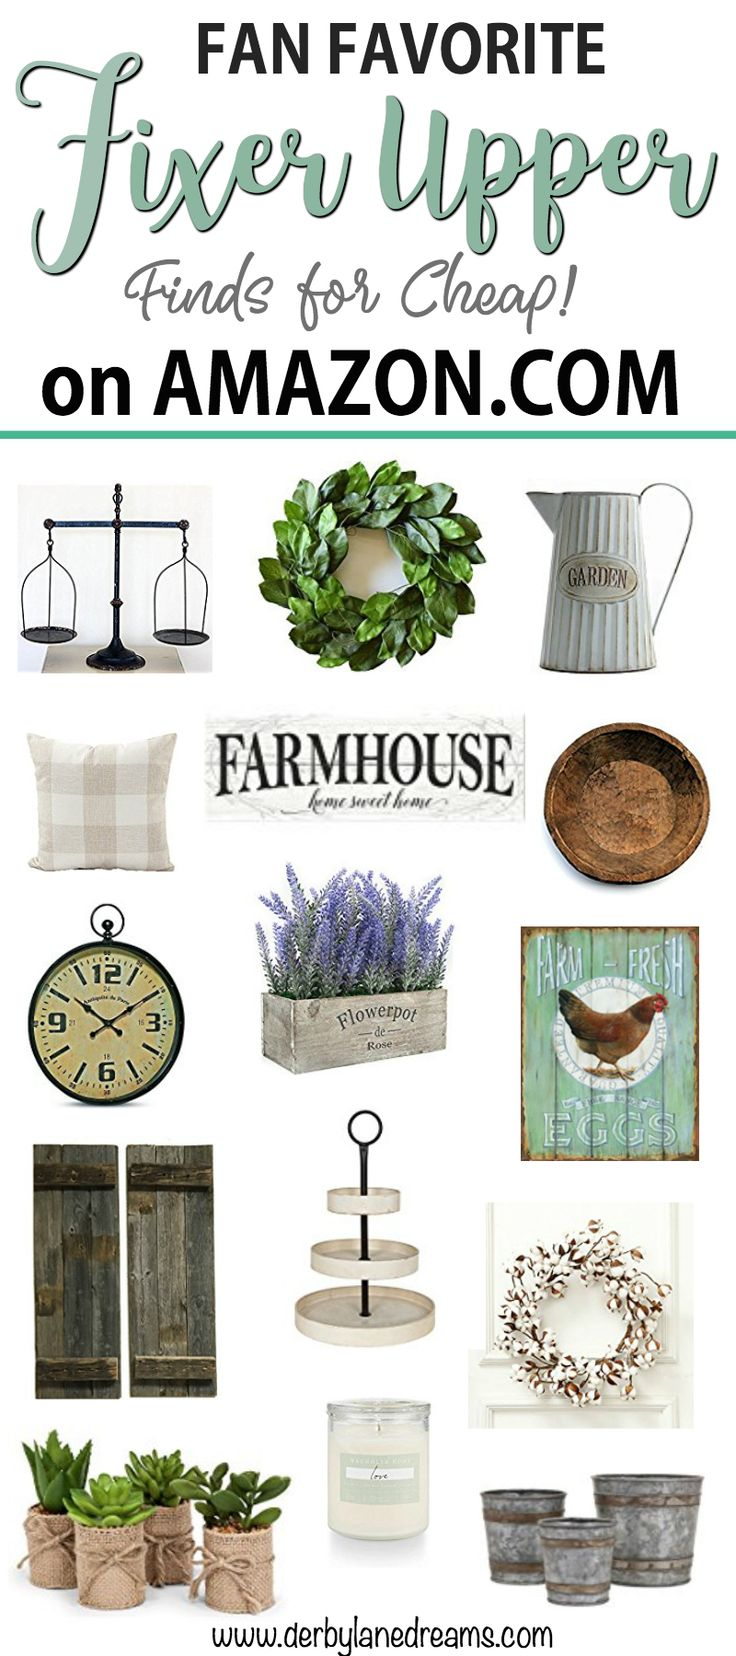 Fixer Upper Finds for Cheap on Amazon! Joanna Gaines, farmhouse decor, and rustic style all in one. Find the BEST deals on Fixer Upper Decor on Amazon.com